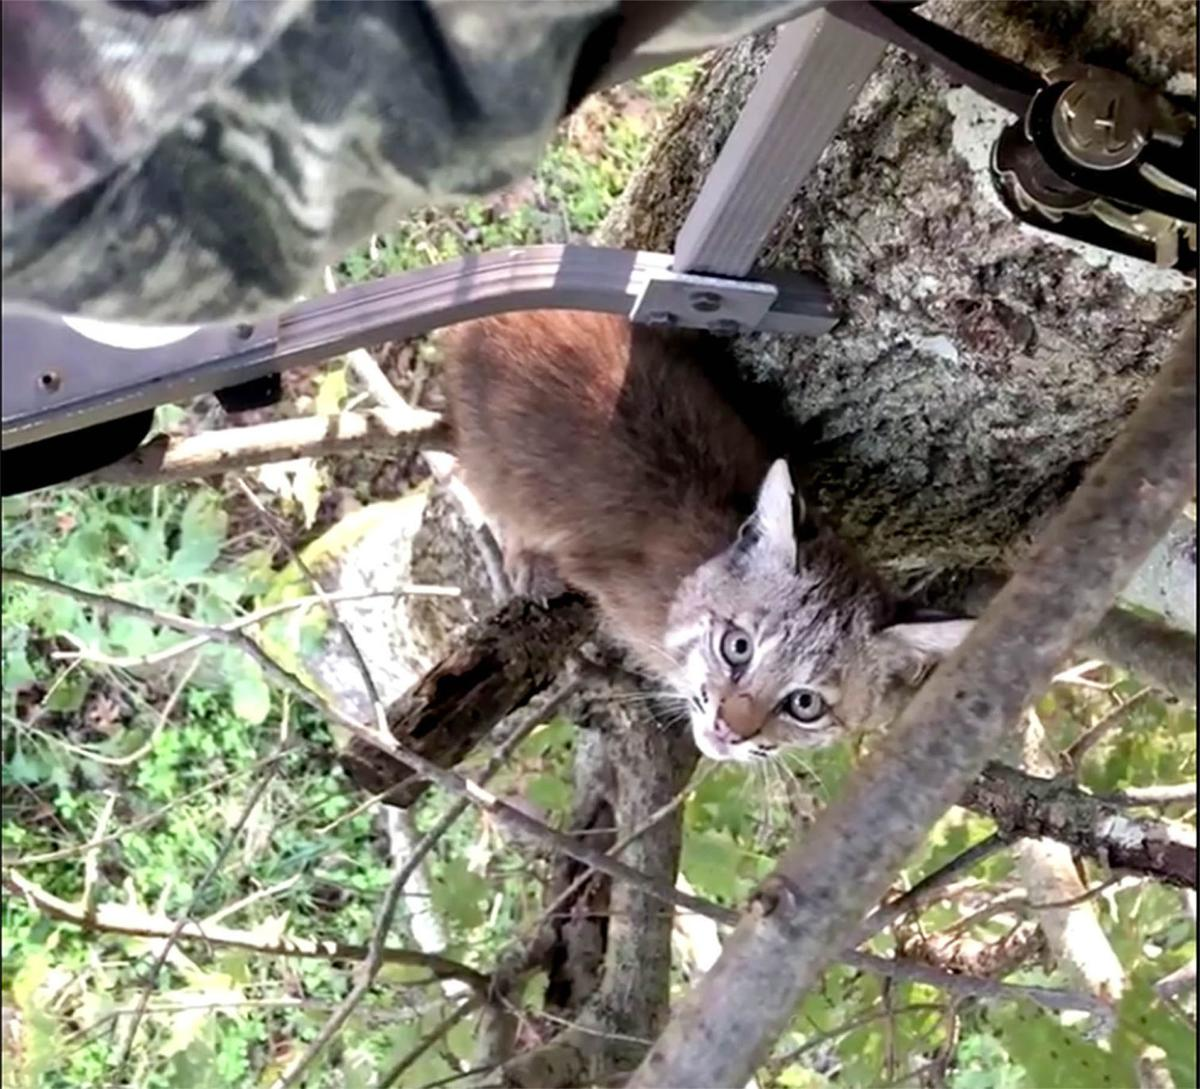 Bobcat kittens visit area deer hunter in his tree stand